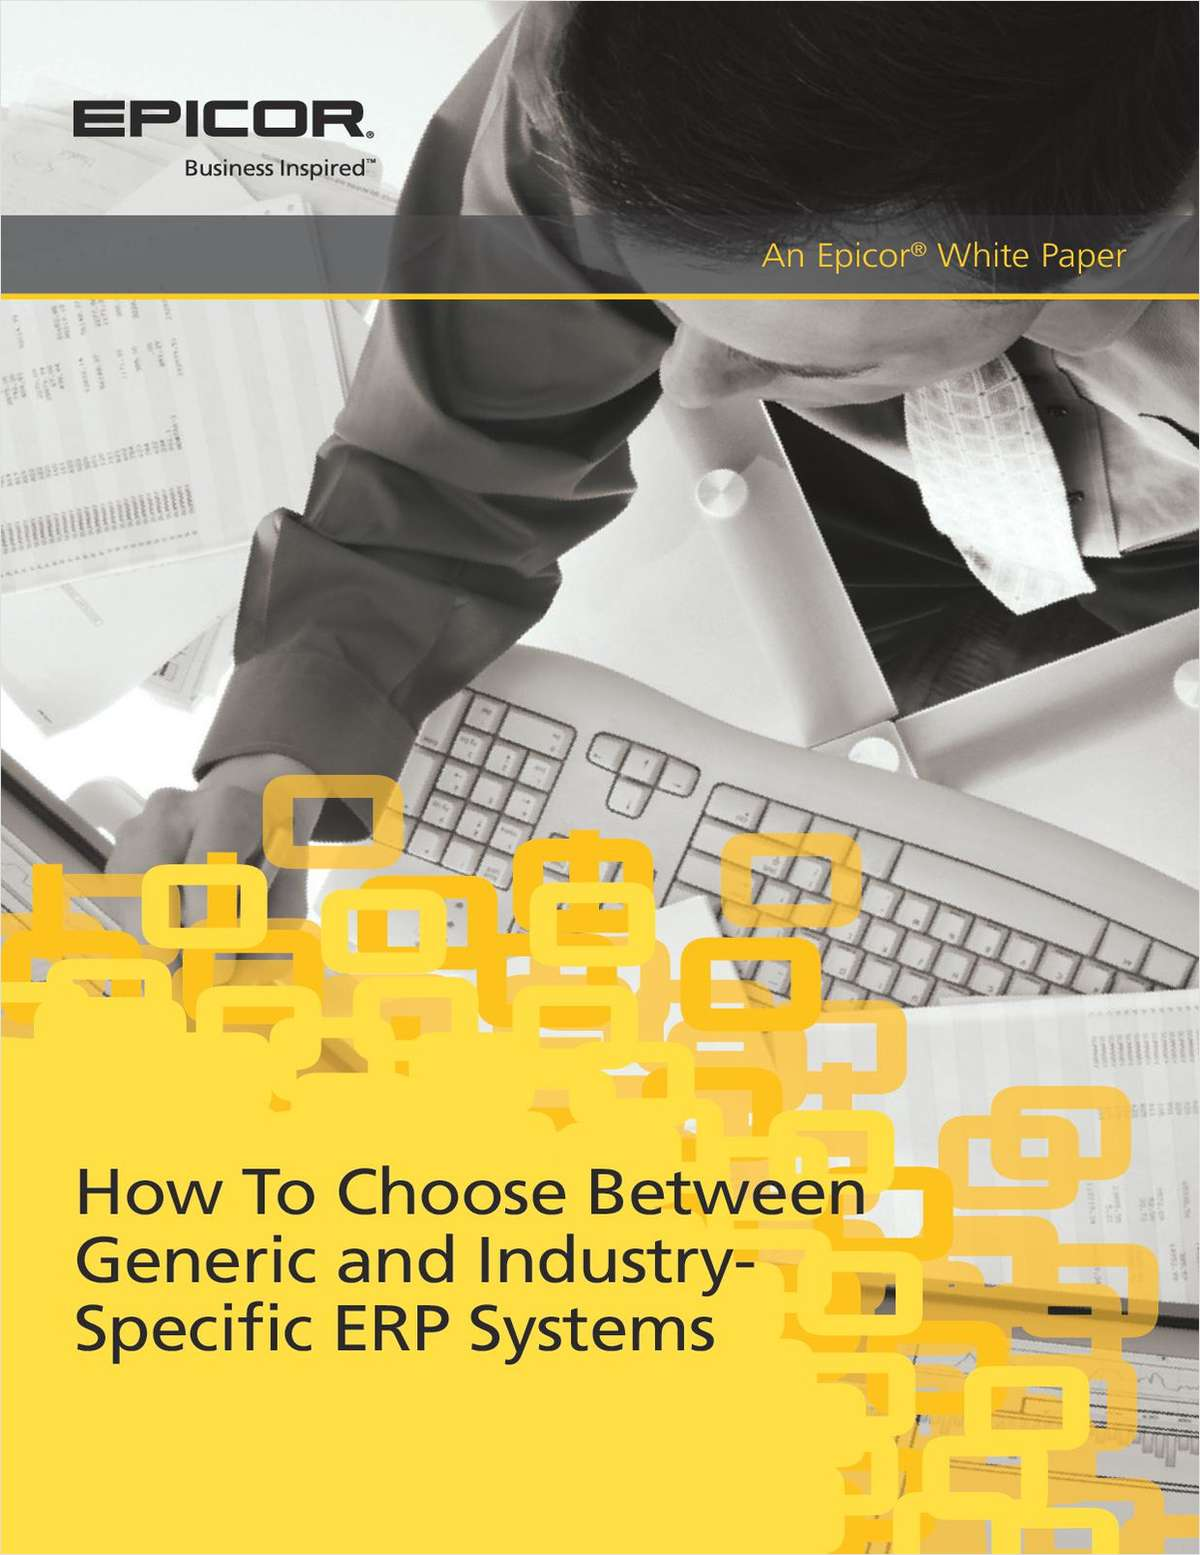 Best Practices to Choose Between Generic and Industry- Specific ERP Systems